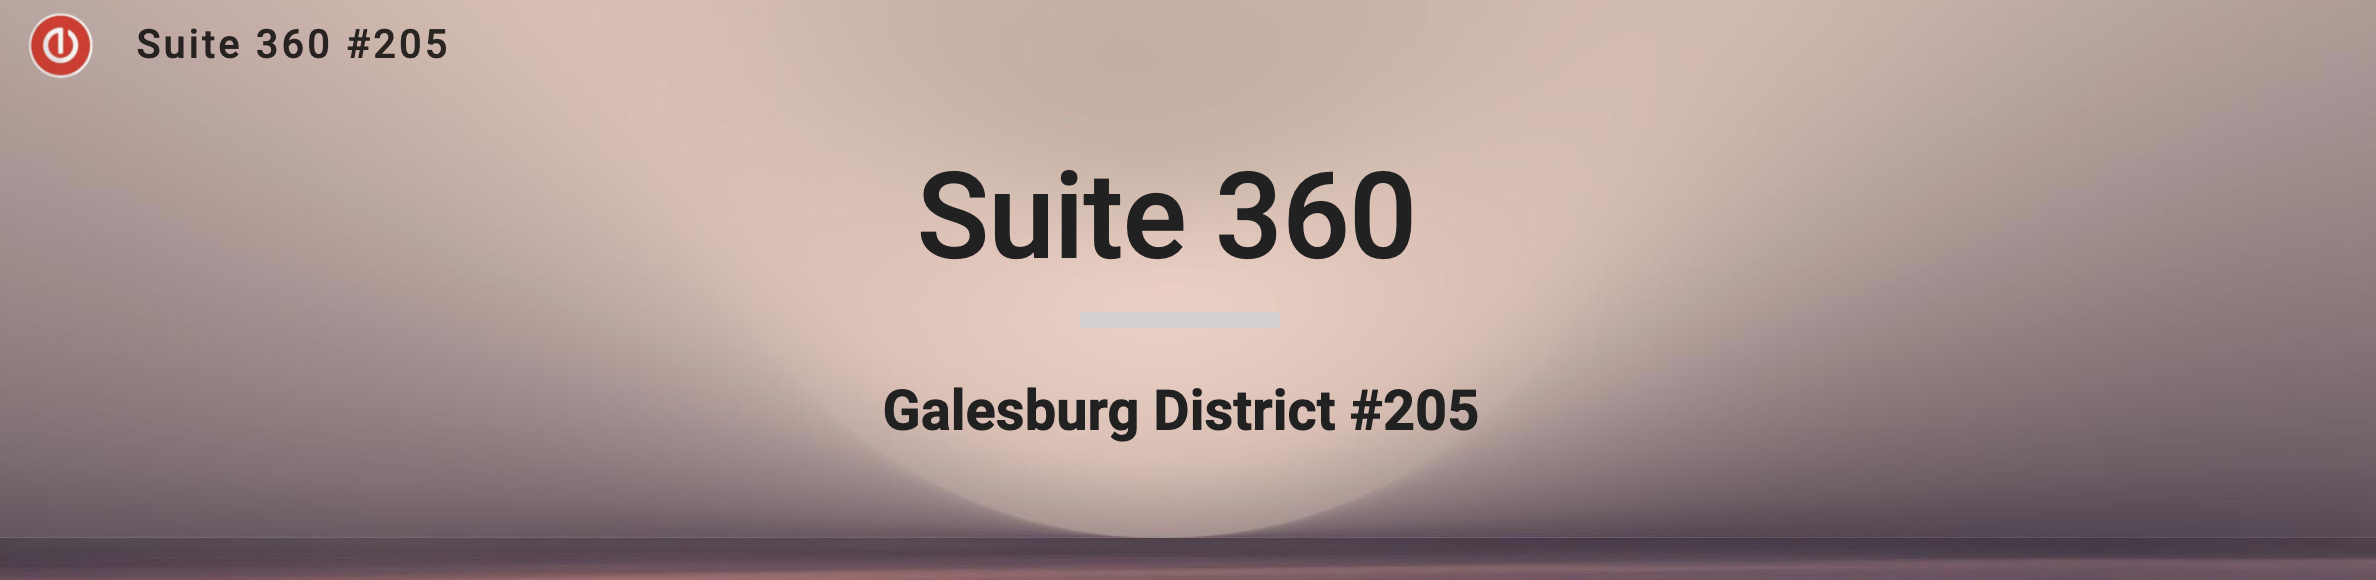 Suite 360 Website